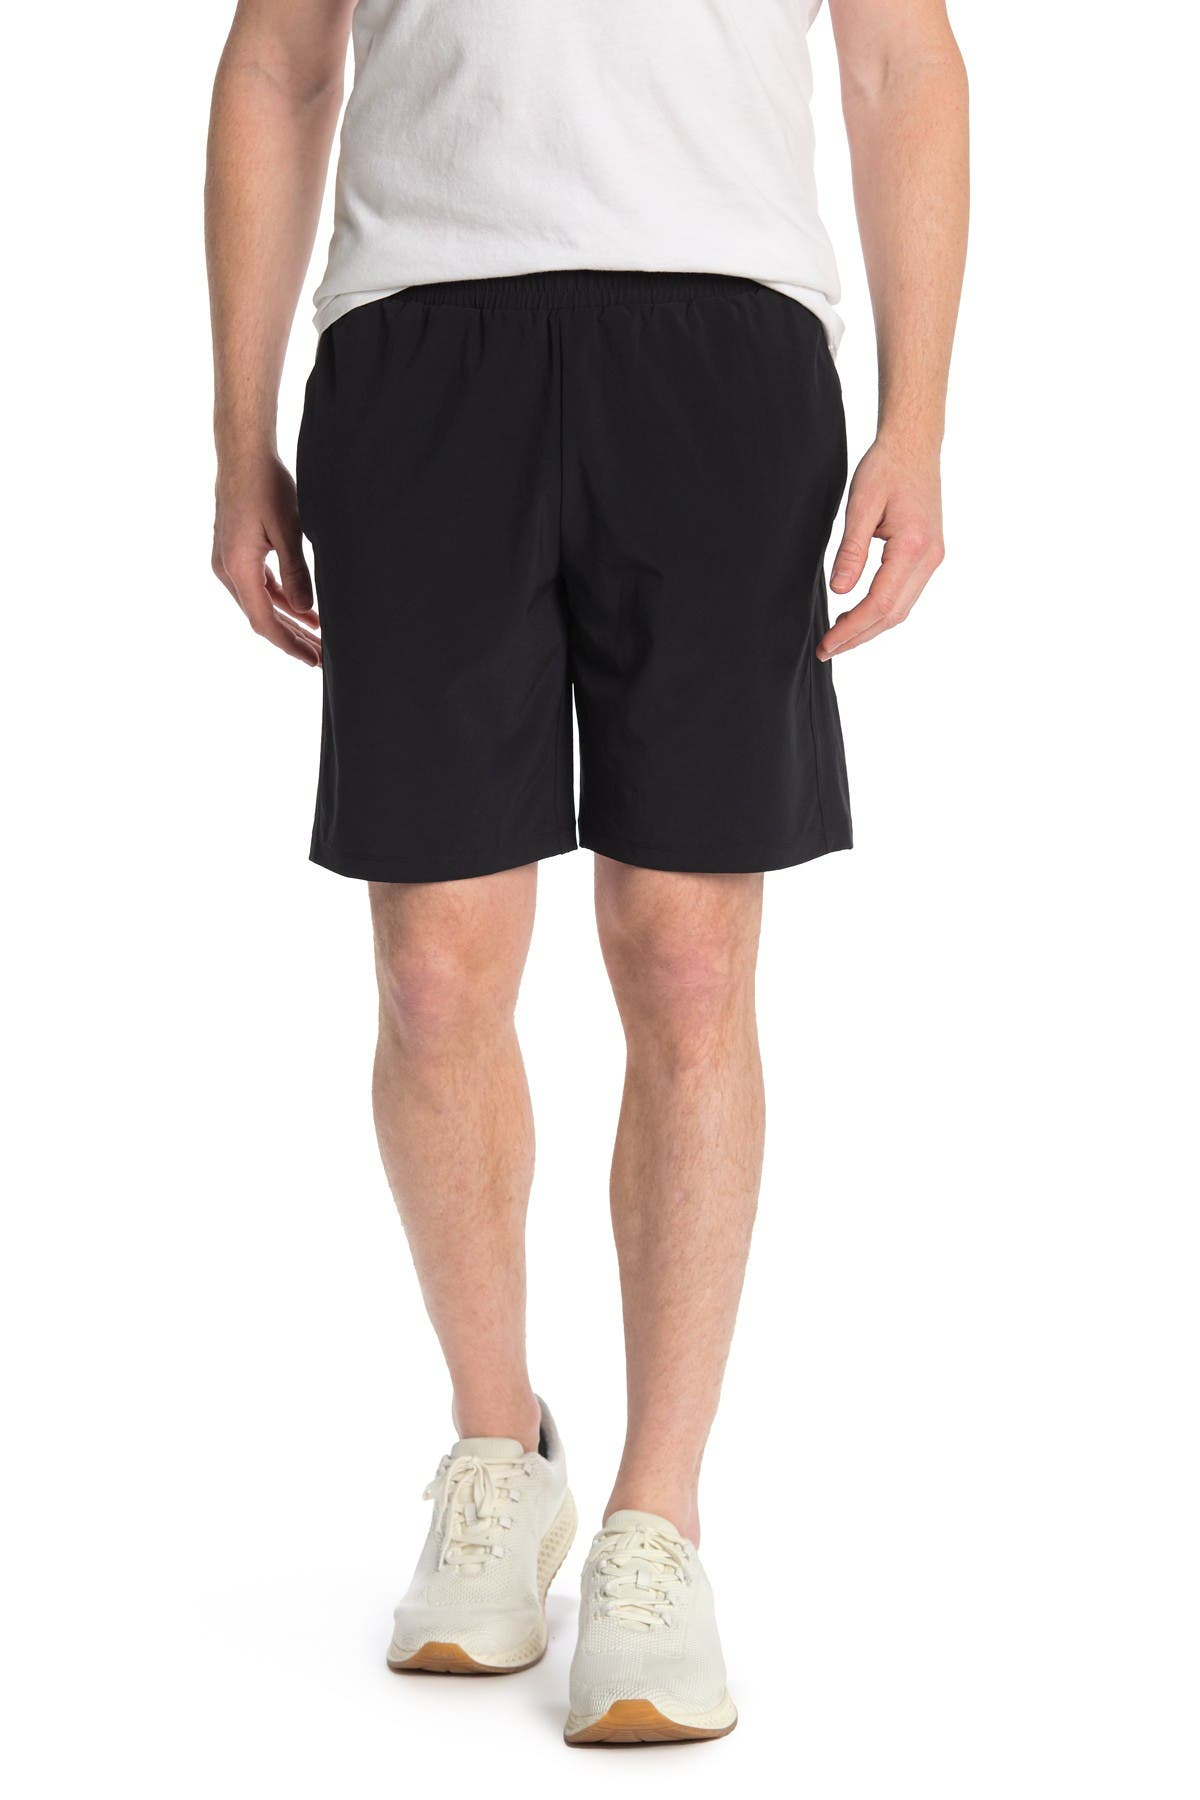 Image of Z By Zella Traverse Woven Shorts